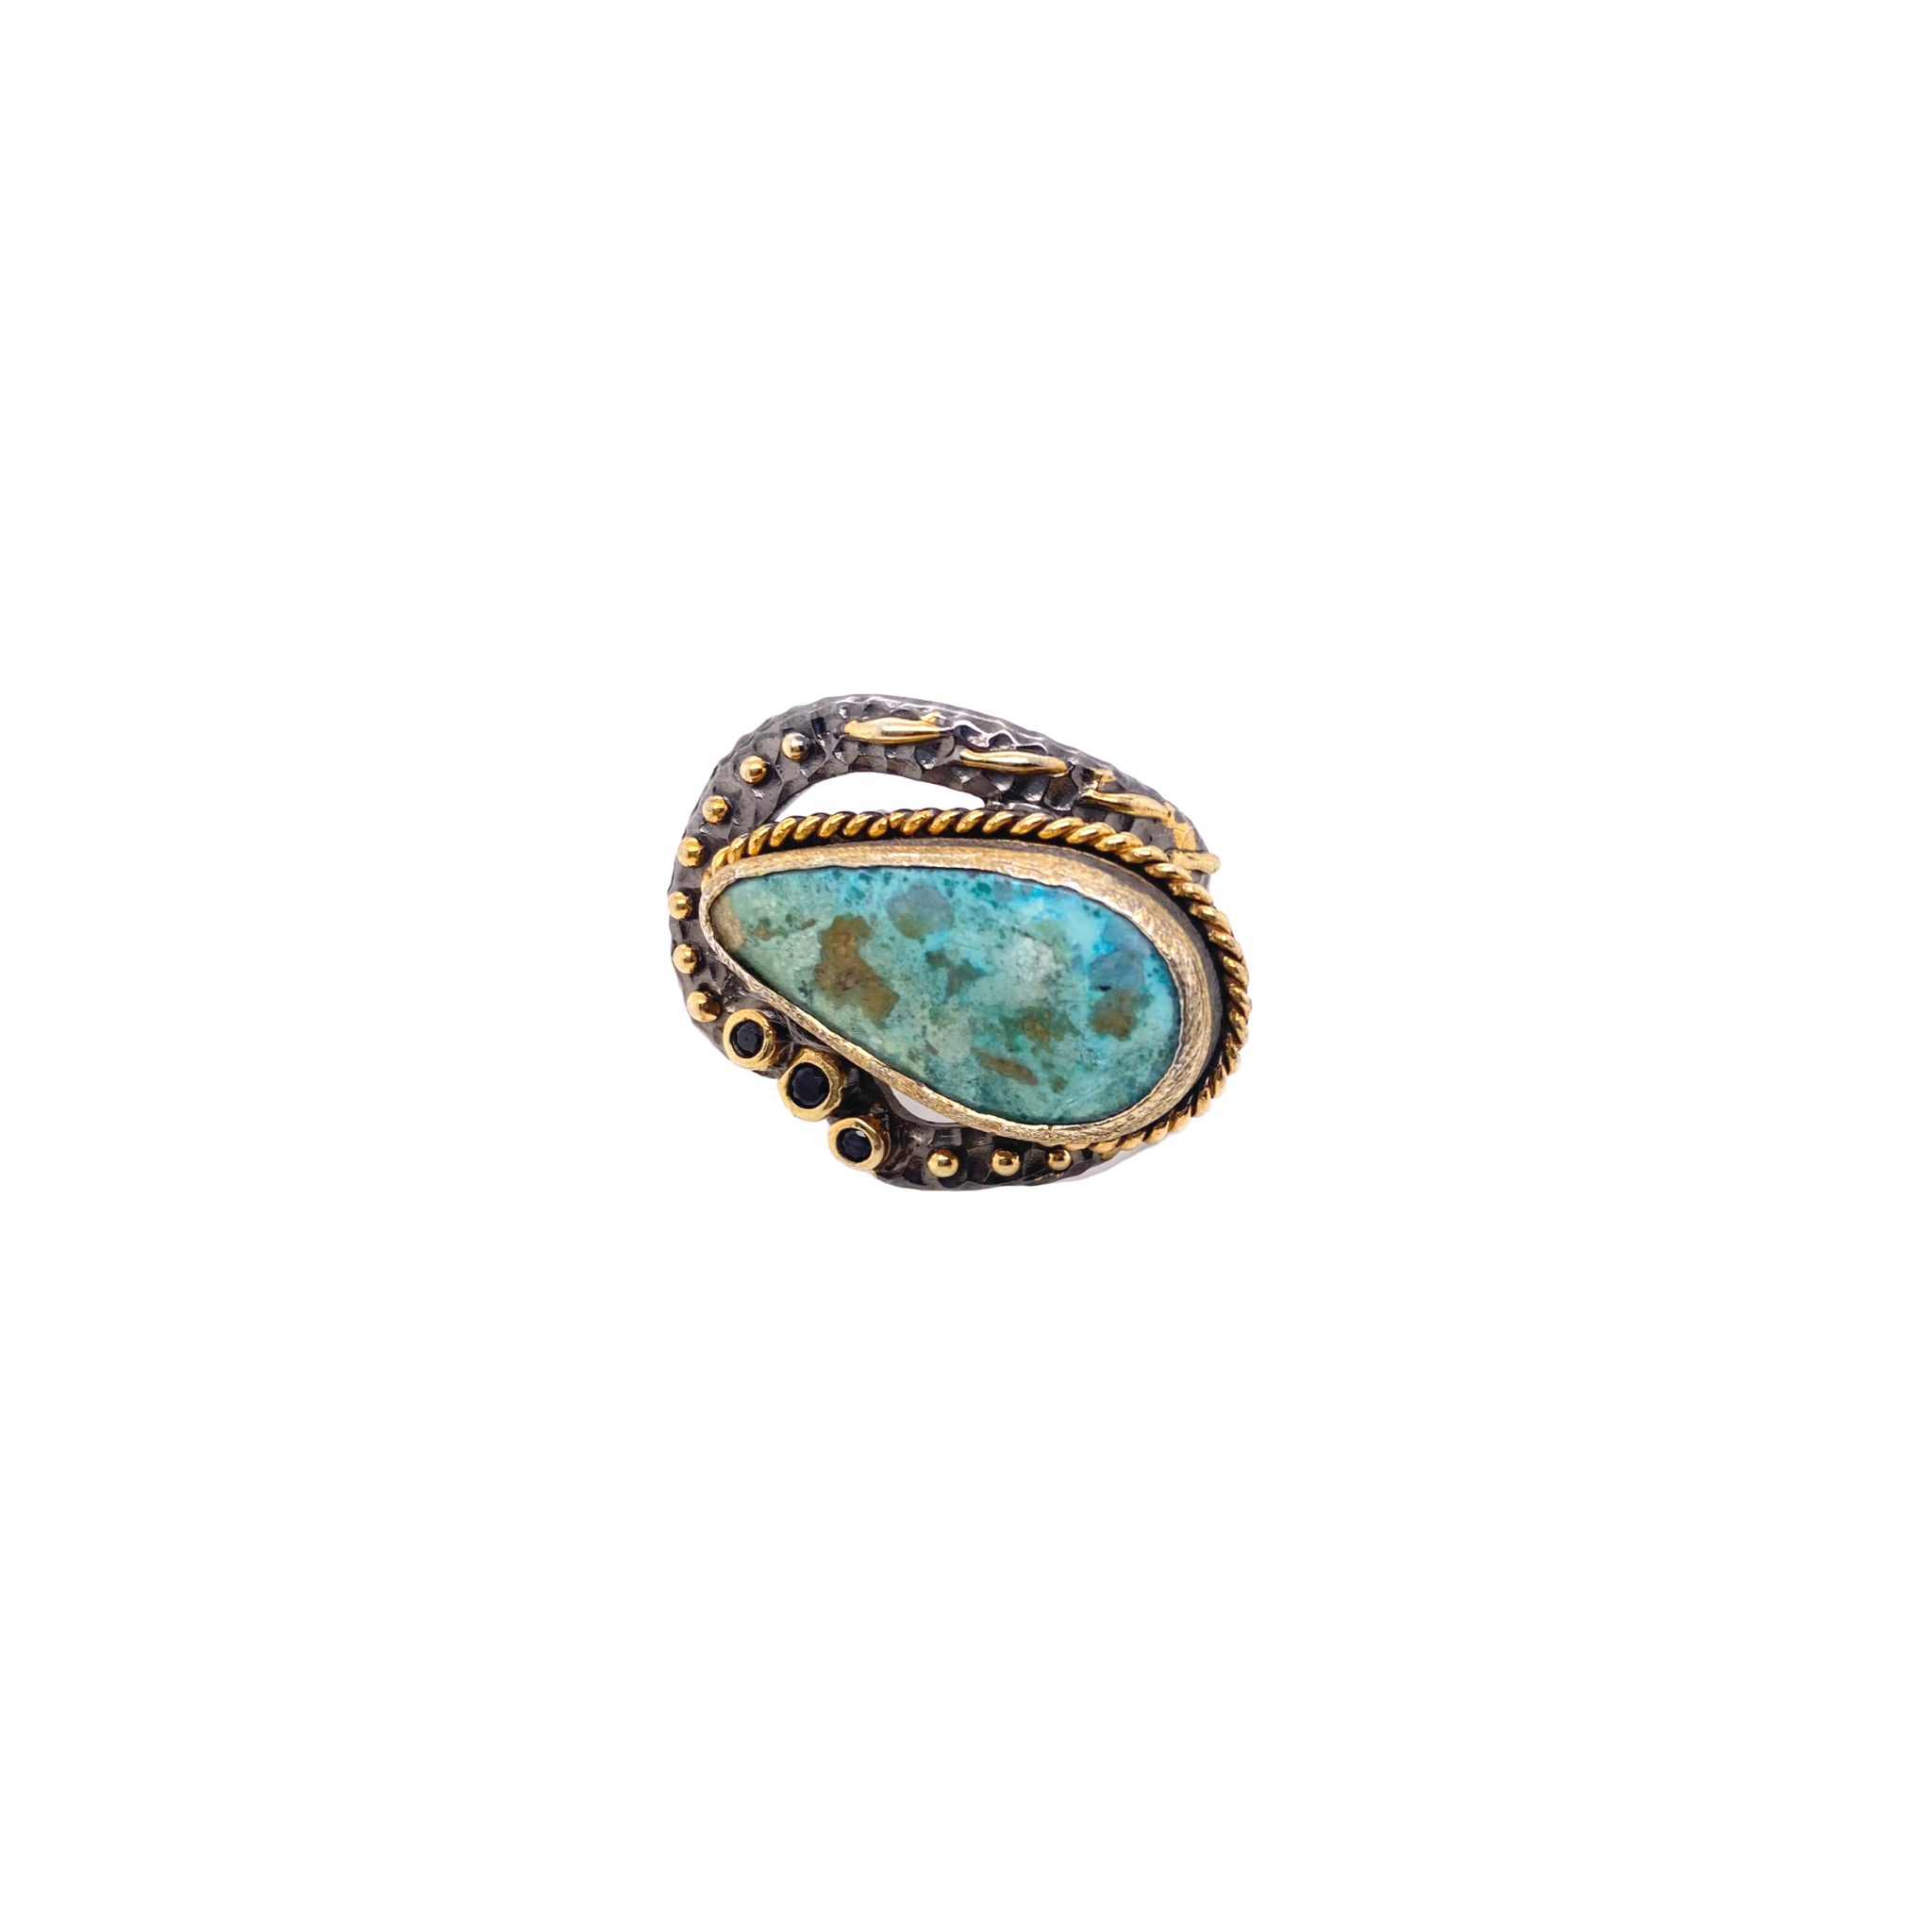 Mixed Metal Turquoise Ring - Karlas Jewelry & Gifts